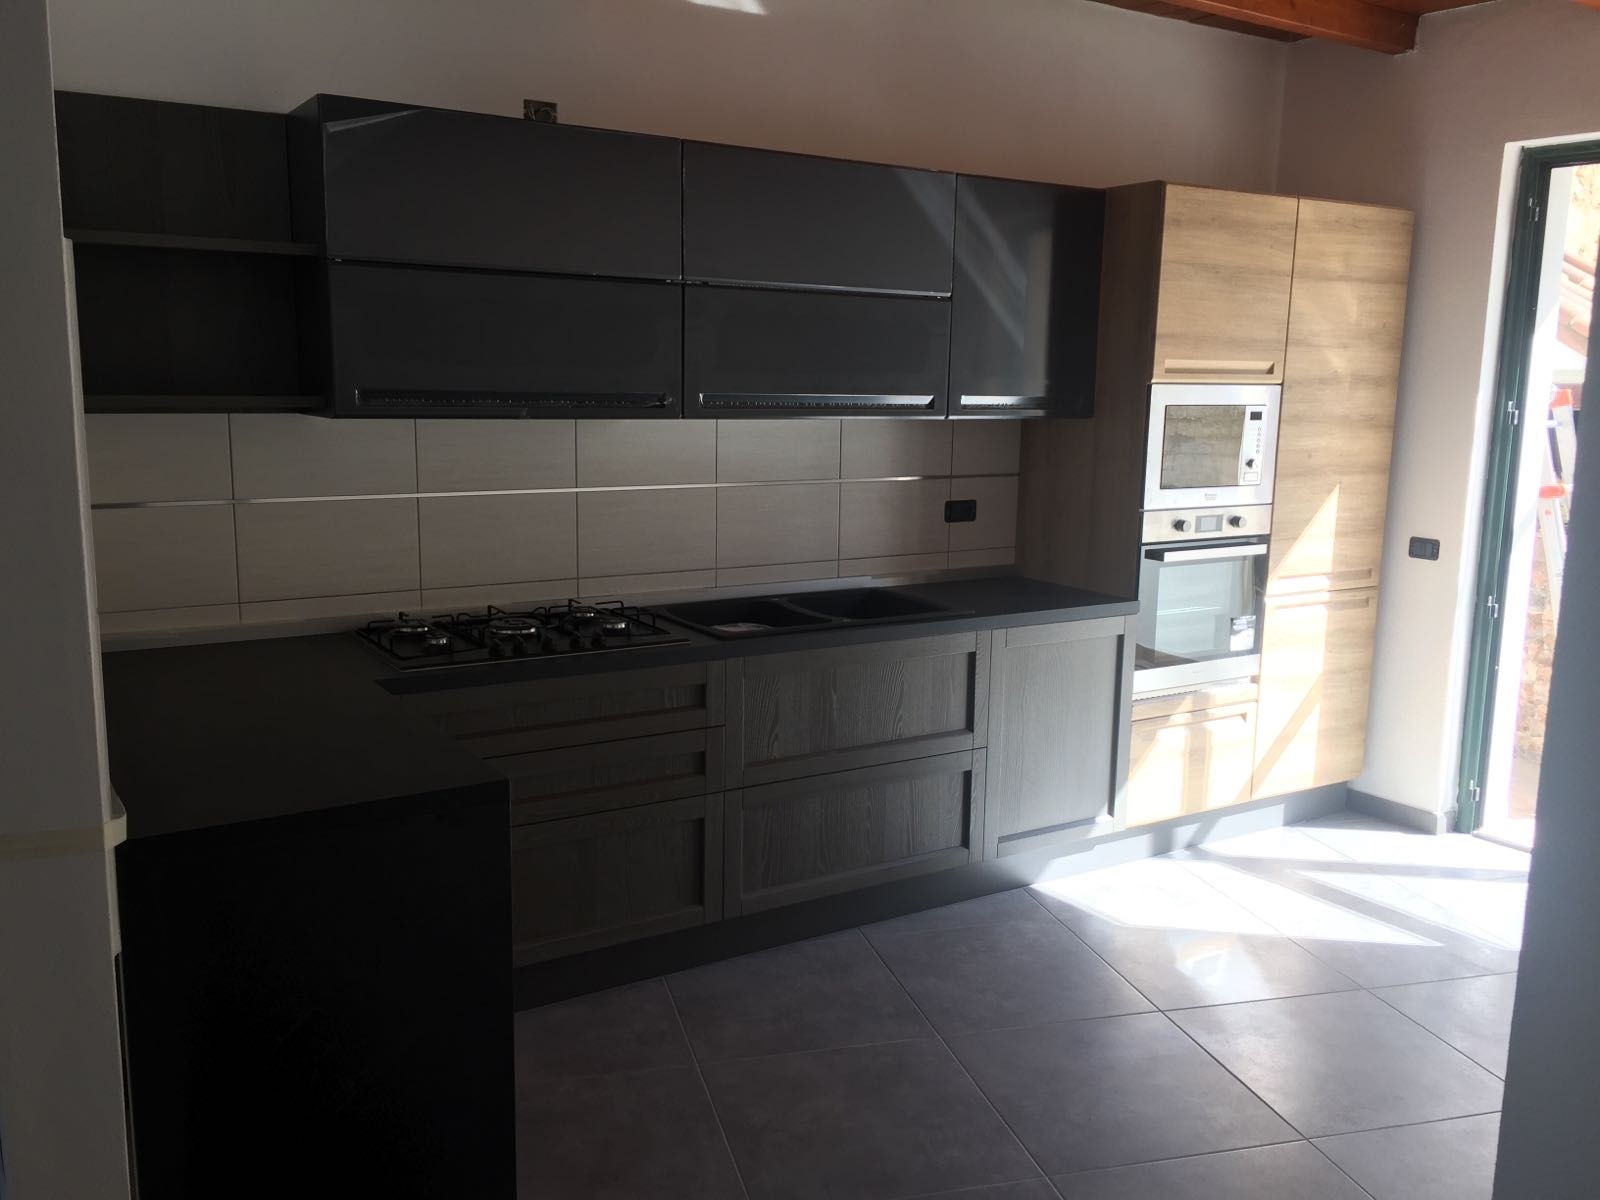 Beautiful Cucine A Gas In Offerta Pictures - Skilifts.us - skilifts.us